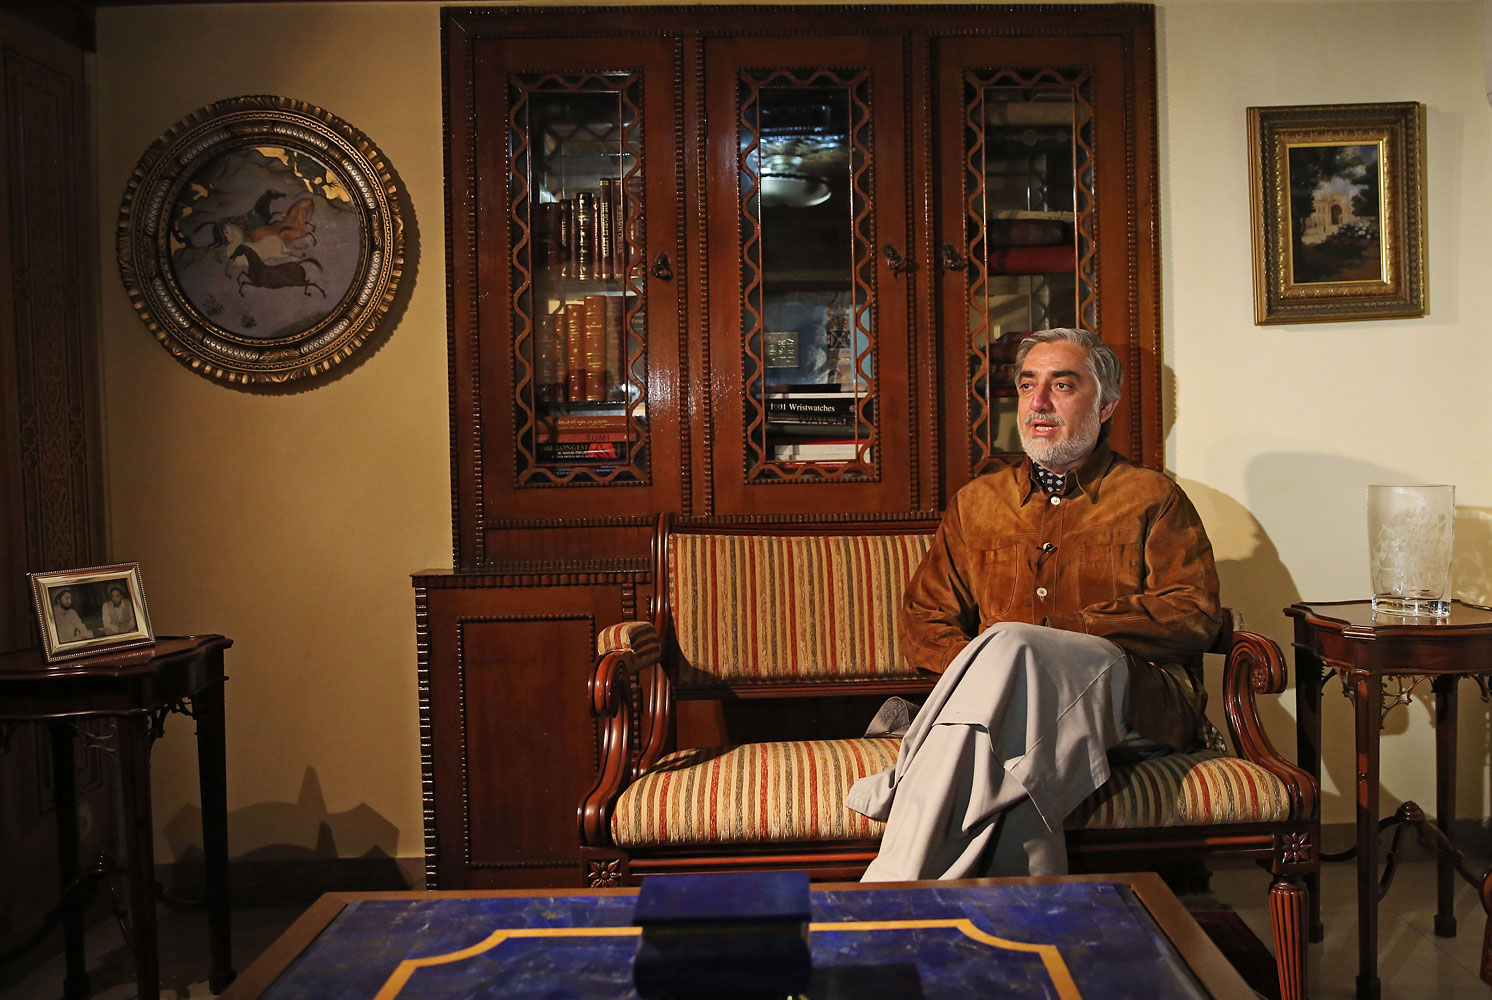 Afghan presidential candidate Abdullah Abdullah talks during an interview with the Associated Press at his residence in Kabul, Afghanistan,  April 24, 2014.